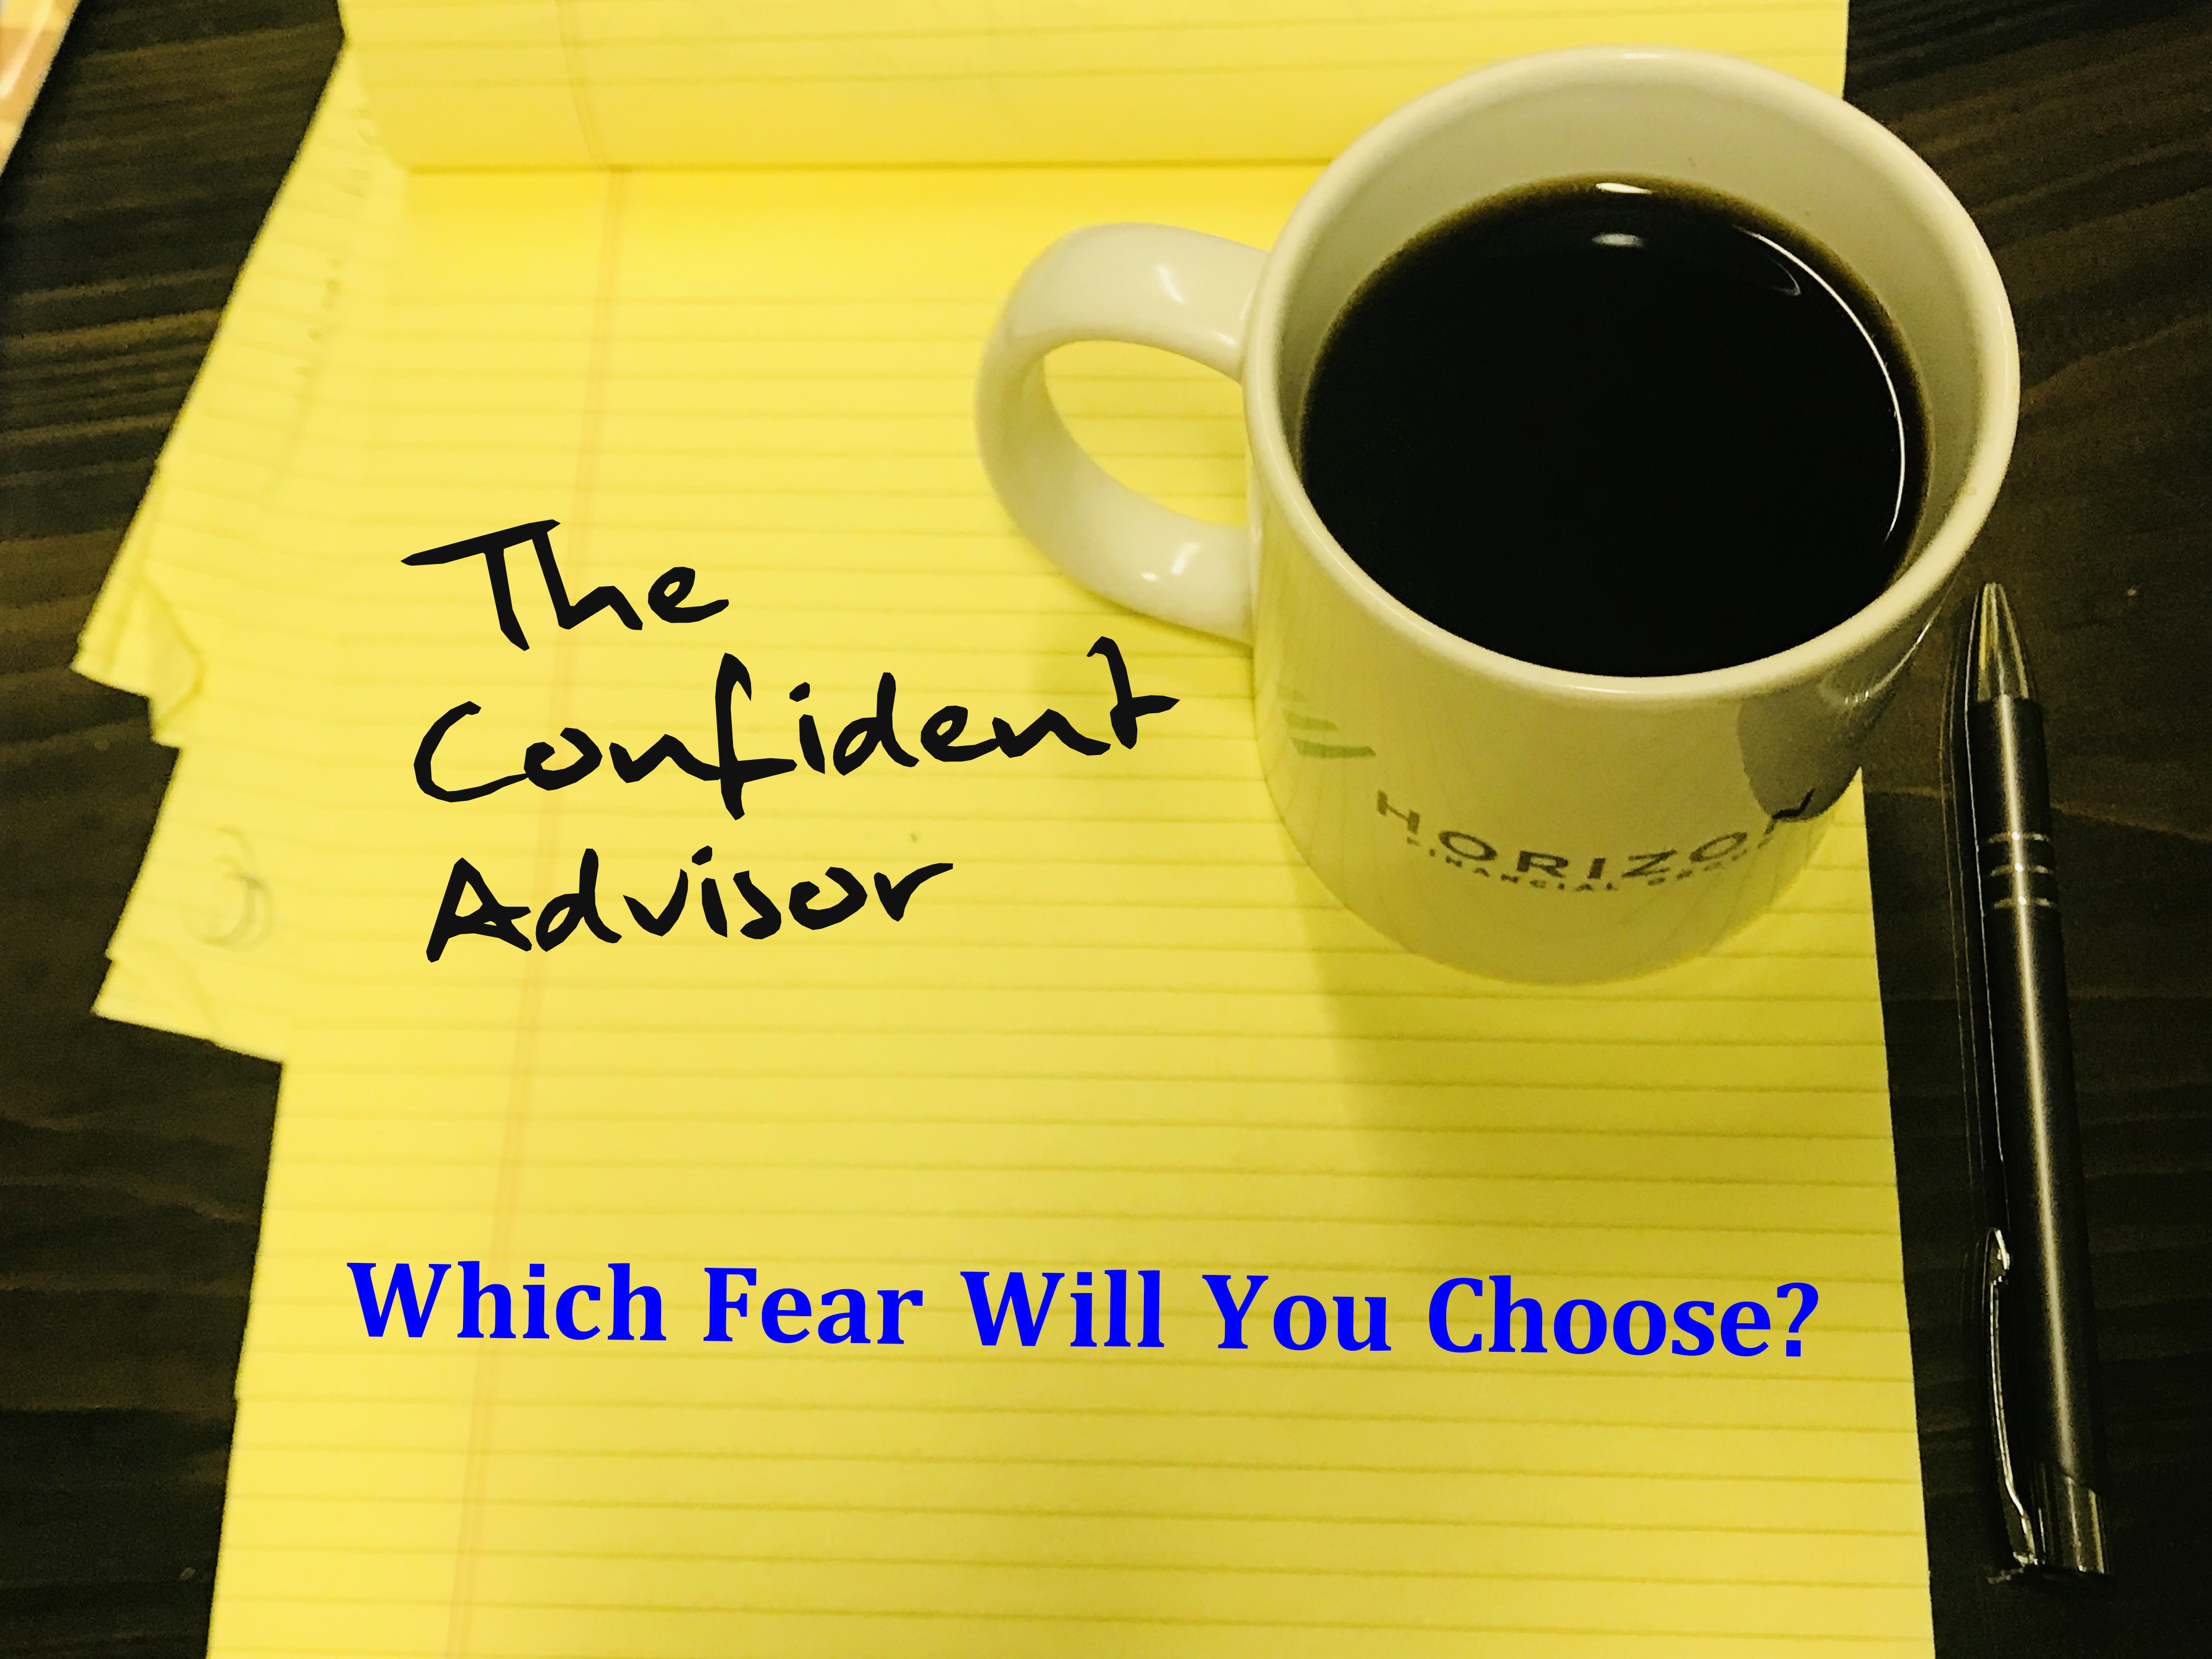 Which Fear Will You Choose?